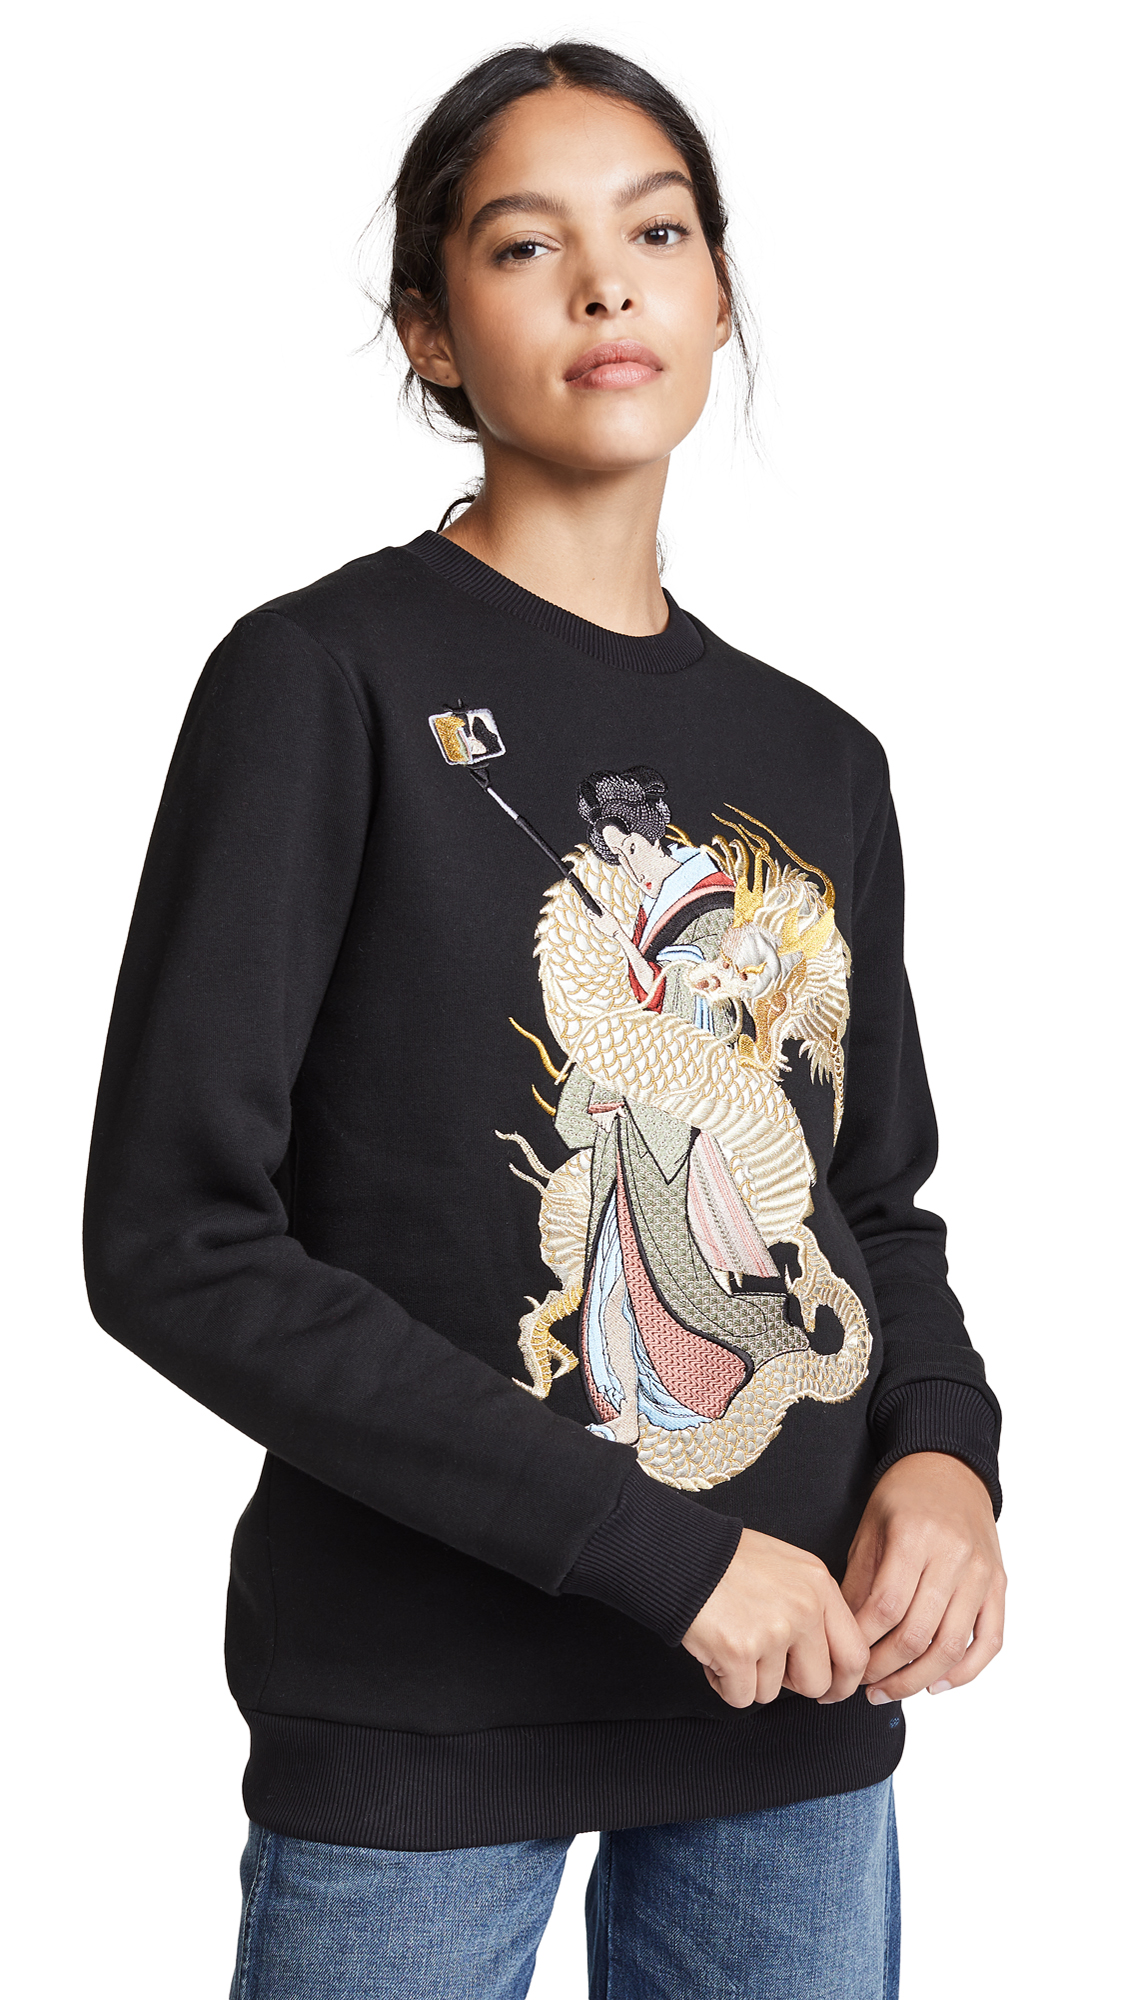 KATYA DOBRYAKOVA Girl With Dragon Sweatshirt in Black